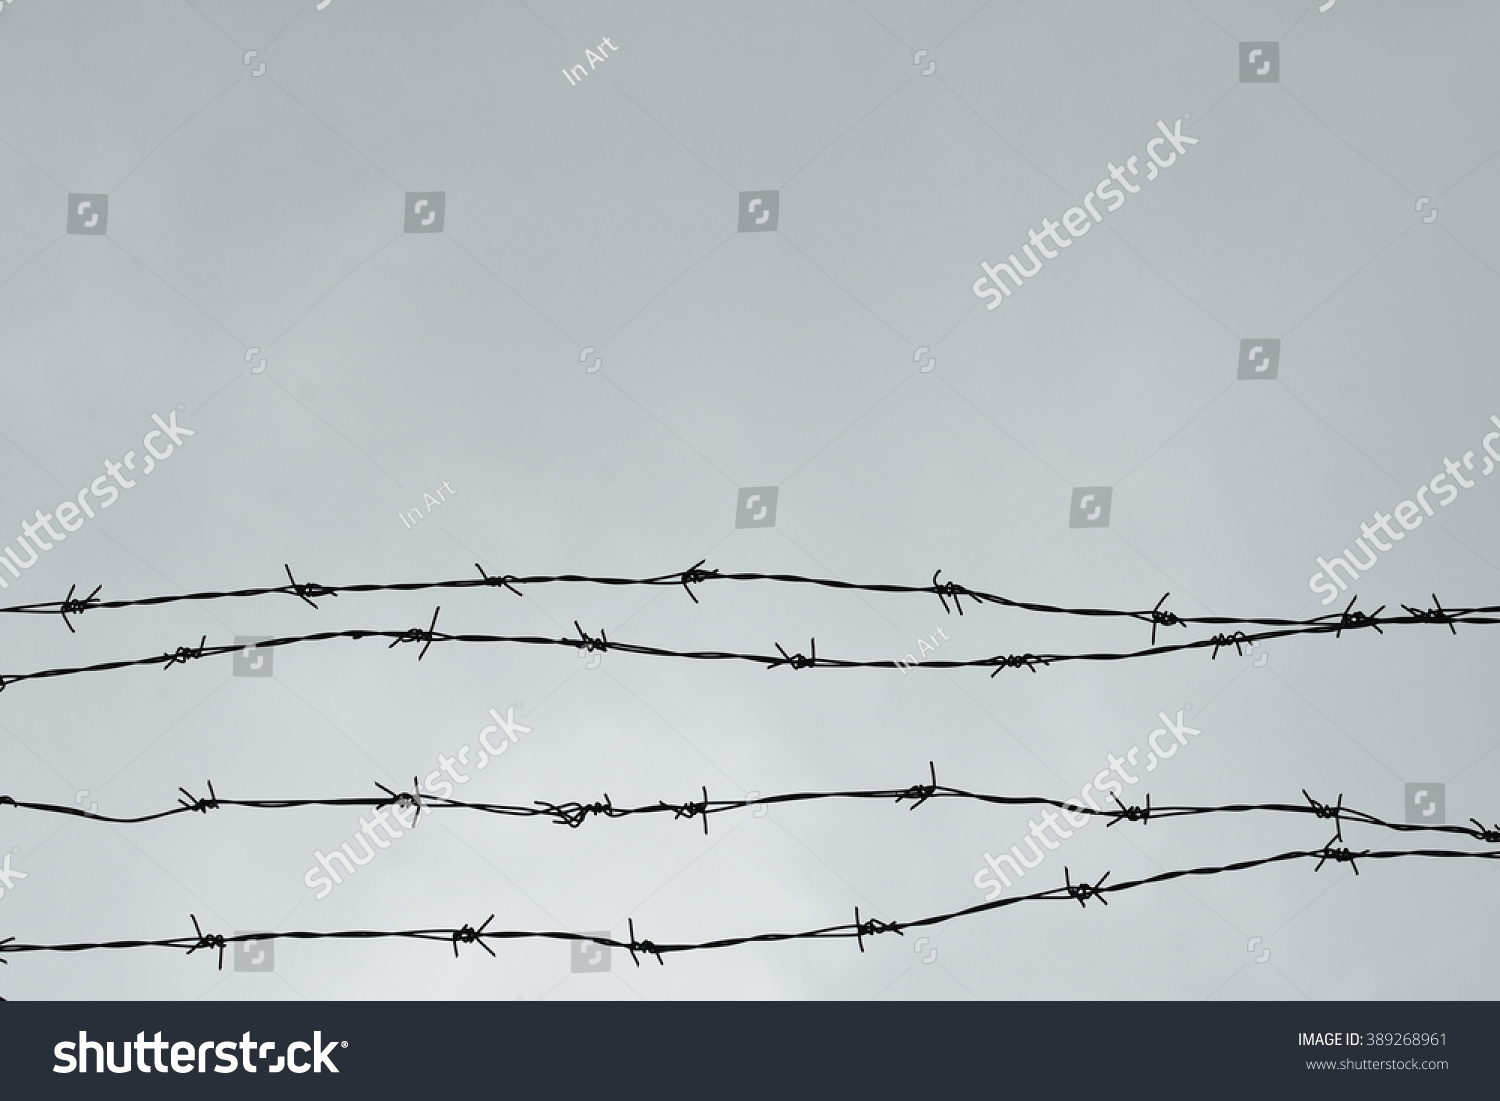 Royalty-free Fencing. Fence with barbed wire. Let.… #389268961 Stock ...